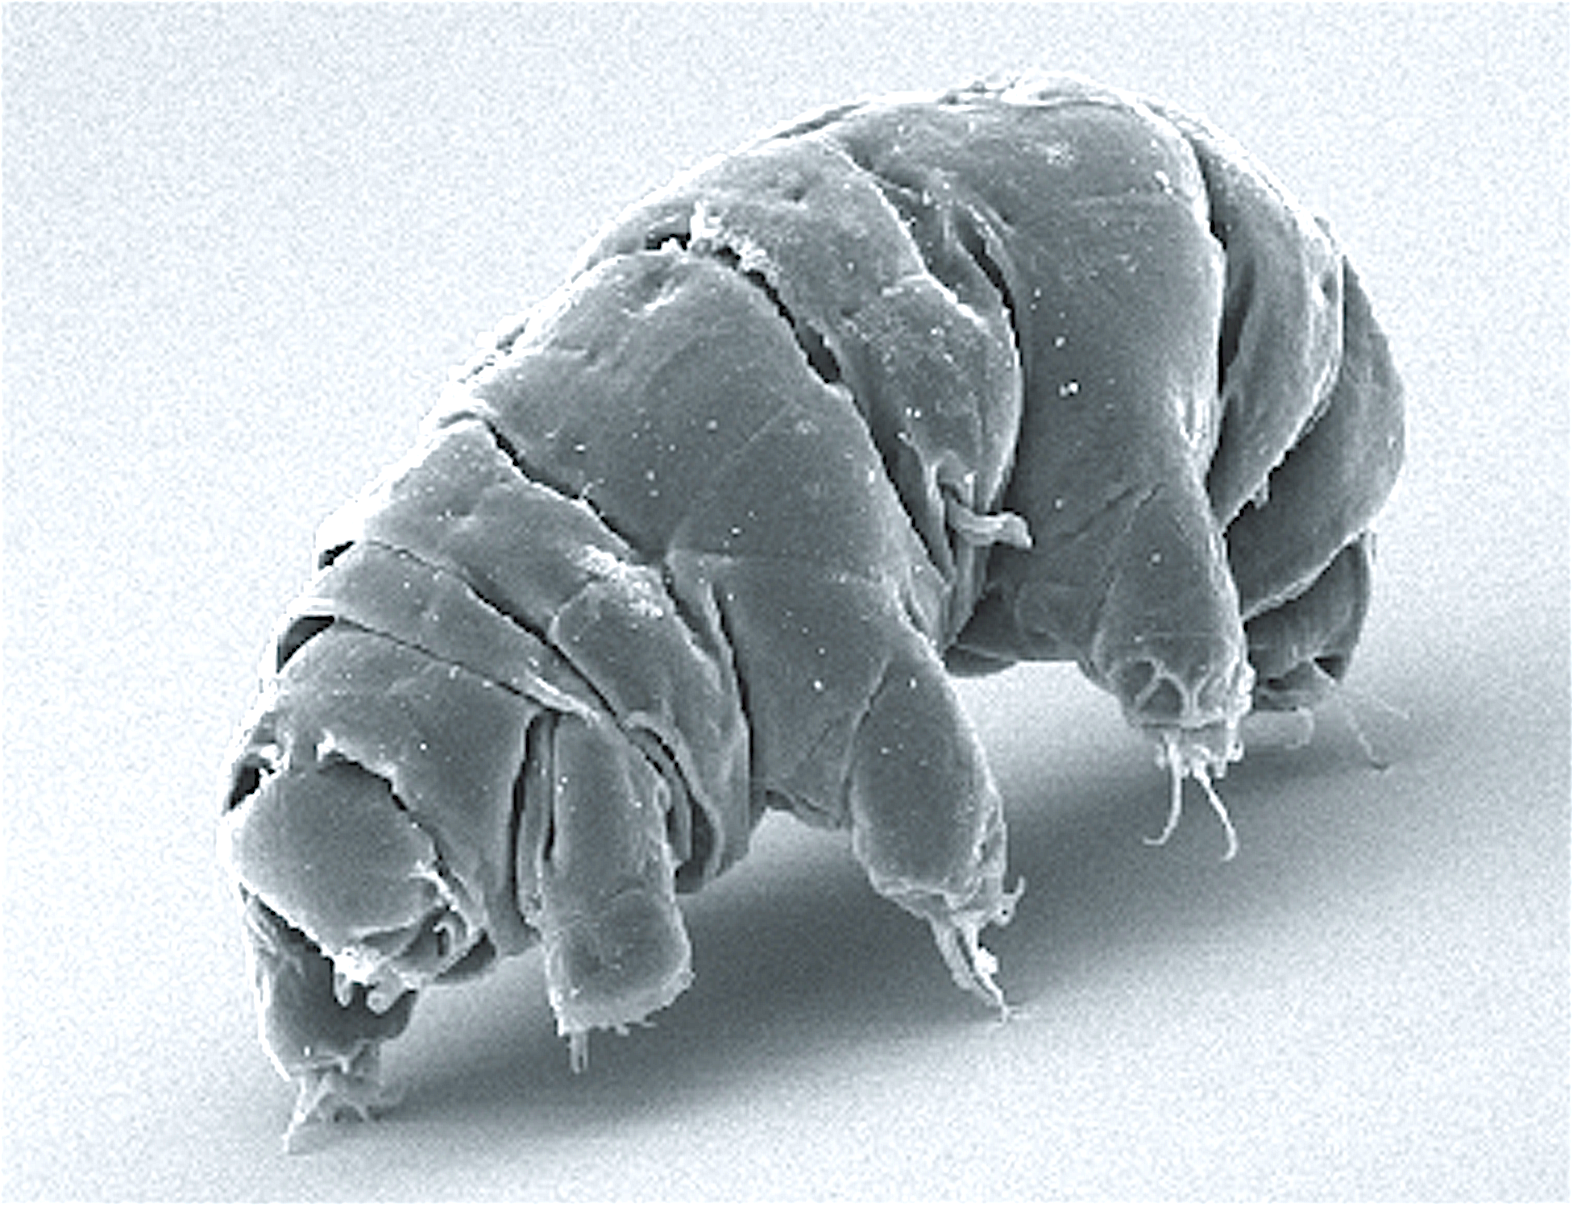 Tiny teachers: how water bears have inspired the Trust to develop more resilient systems